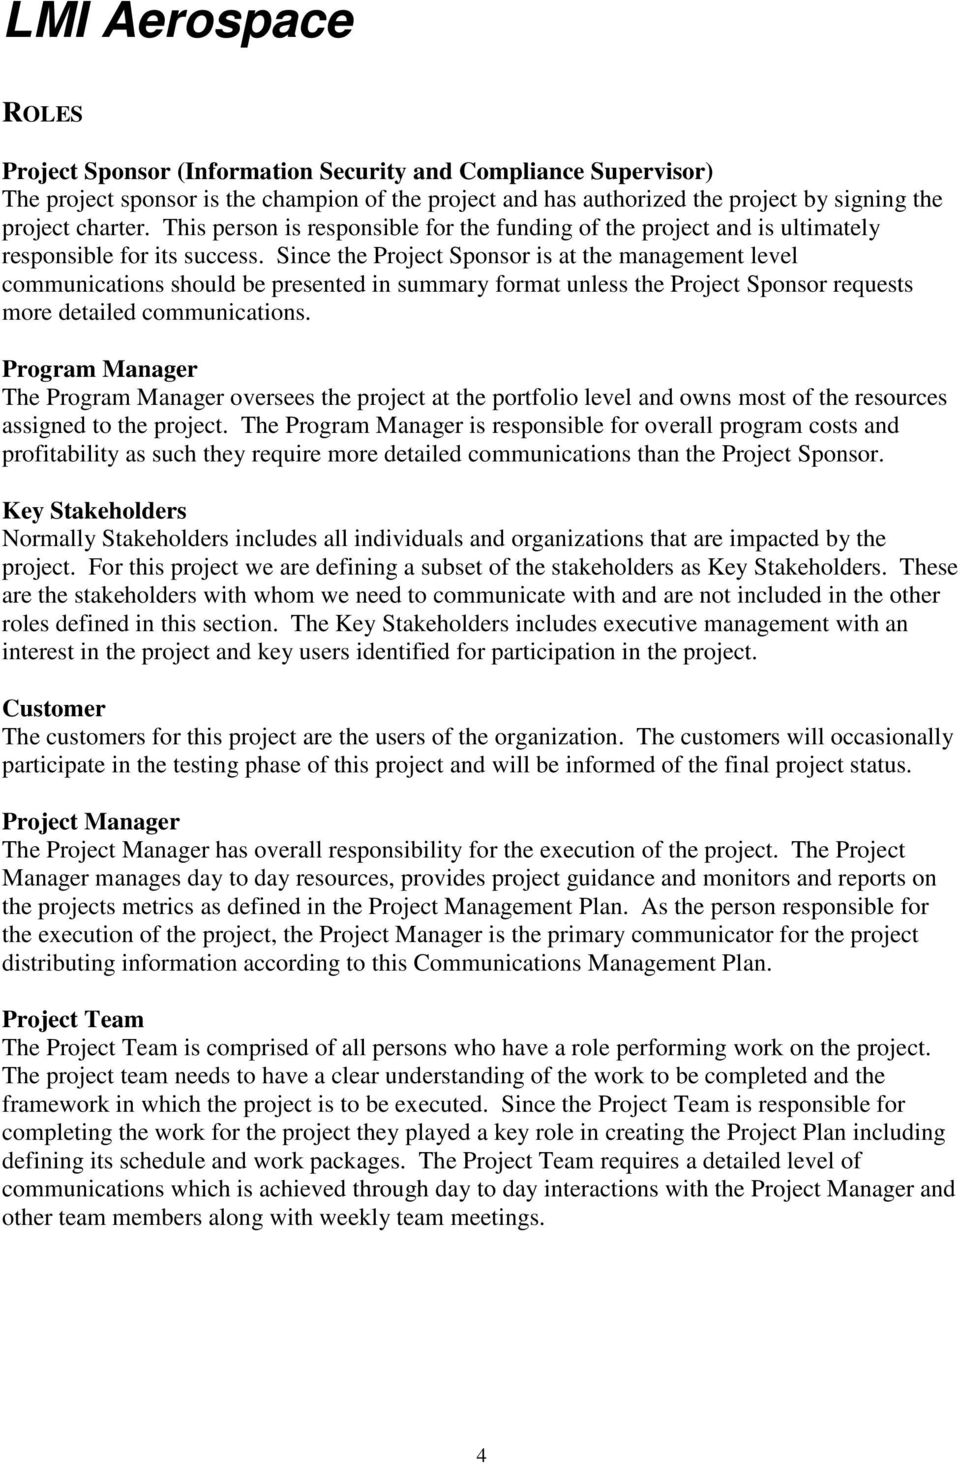 Since the Project Sponsor is at the management level communications should be presented in summary format unless the Project Sponsor requests more detailed communications.